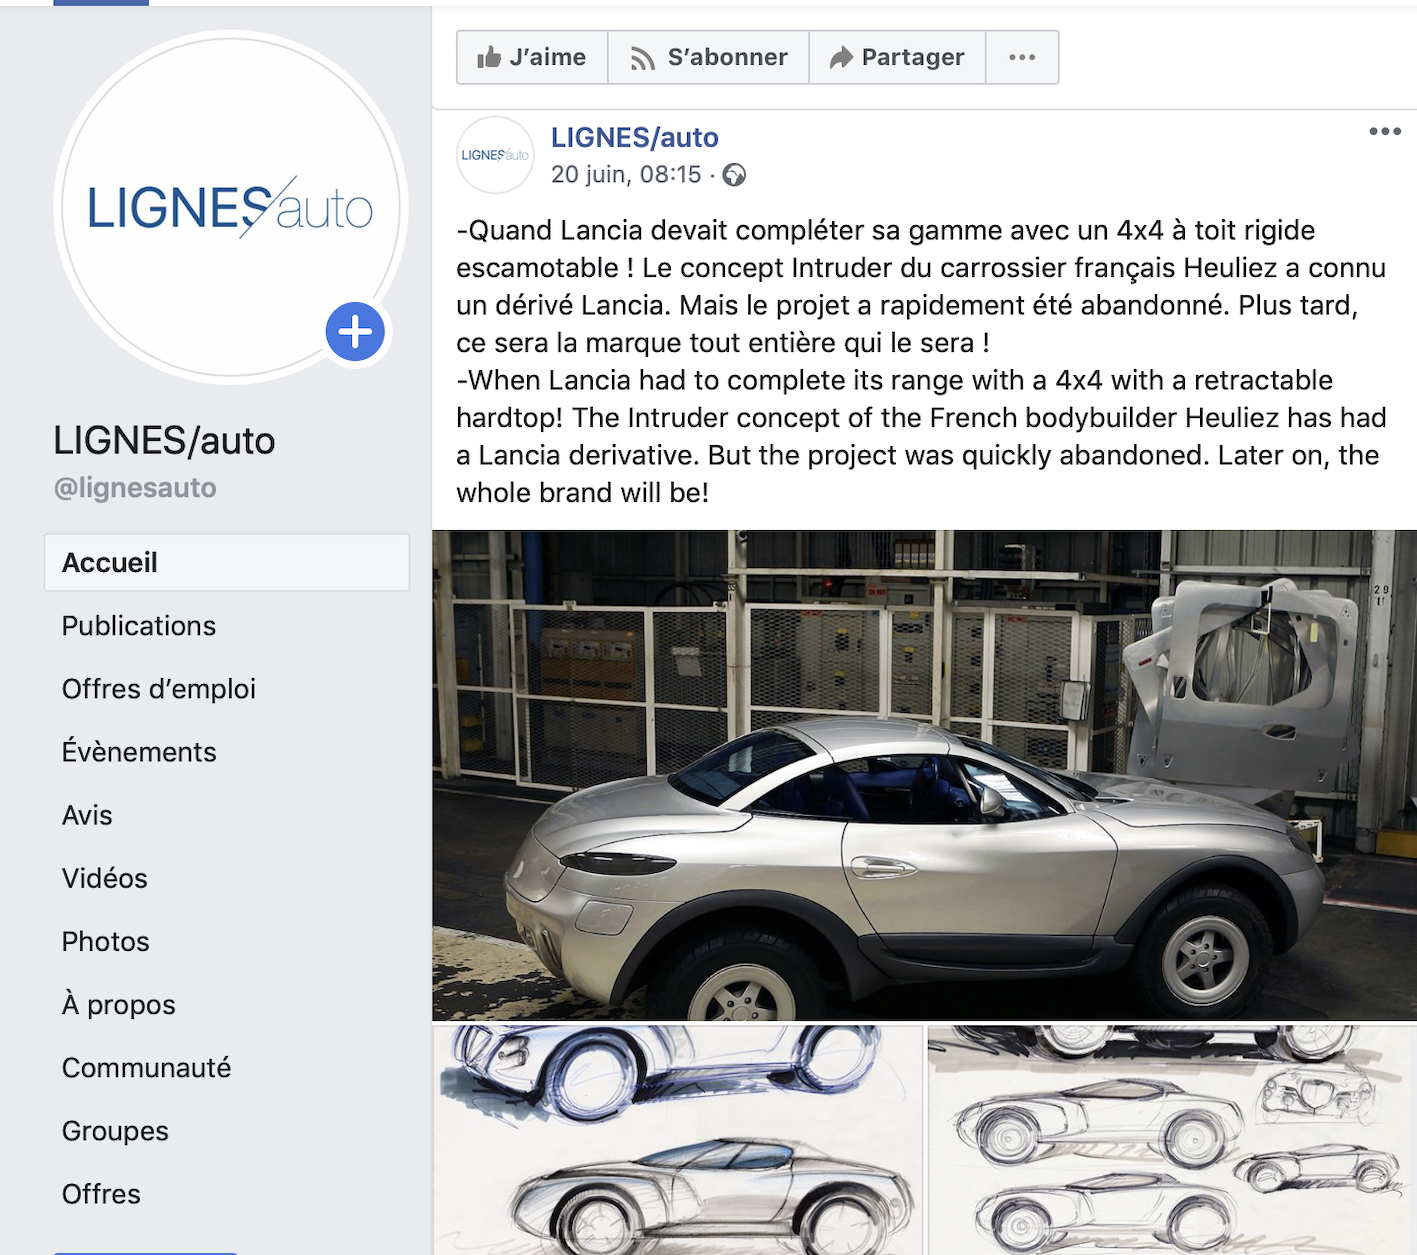 ENGLISH- LIGNES/auto is also a Facebook page and a Youtube channel